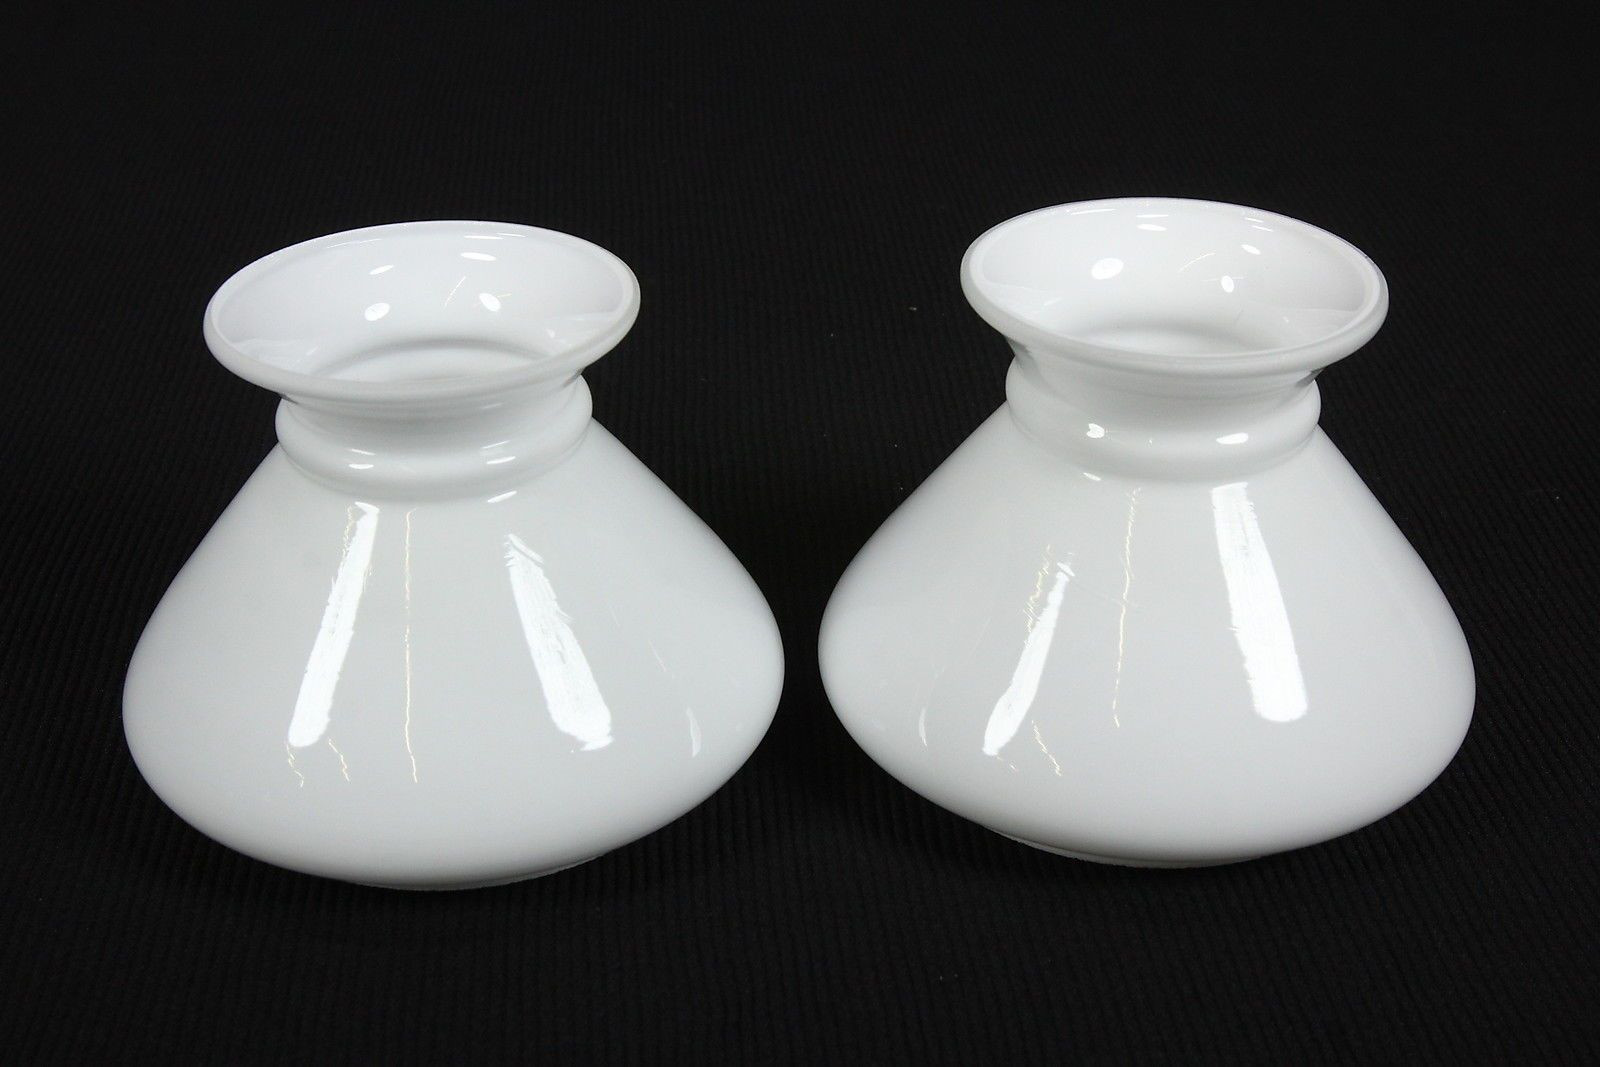 23 Best Glass Cylinder Vases with Flared Rims 9 In 2021 free download glass cylinder vases with flared rims 9 in of light shades parts rooftop antiques pertaining to 2 mini tam o shanter hurricanes for student lamps white case glass 3